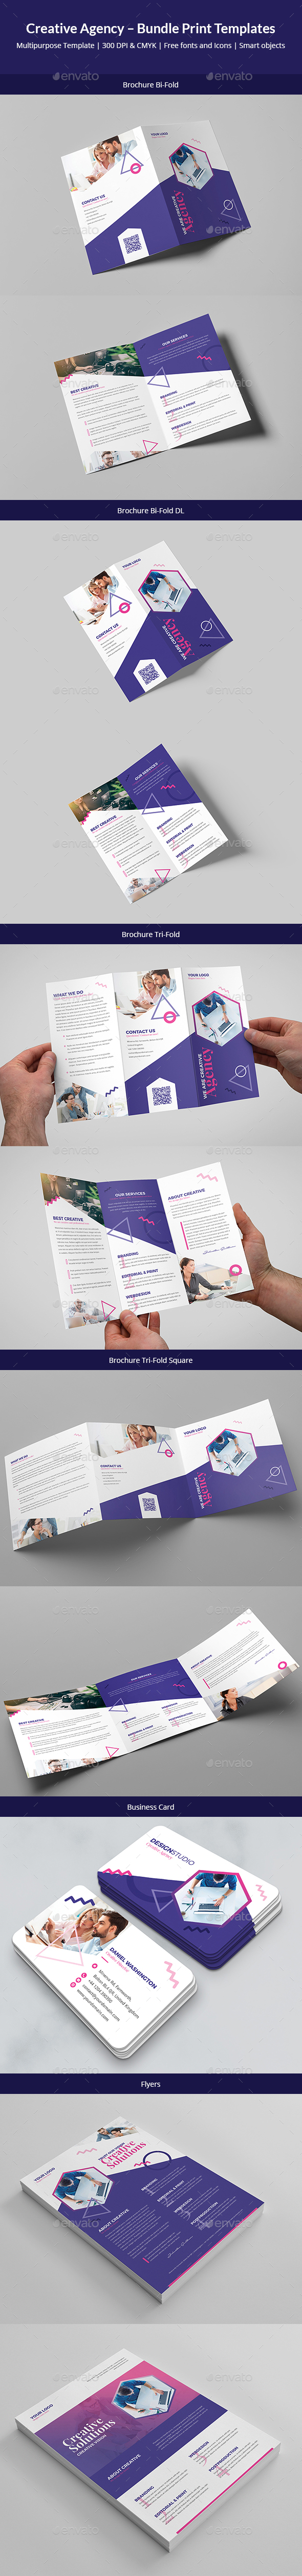 GraphicRiver Creative Agency Bundle Print Templates 6 in 1 20961506